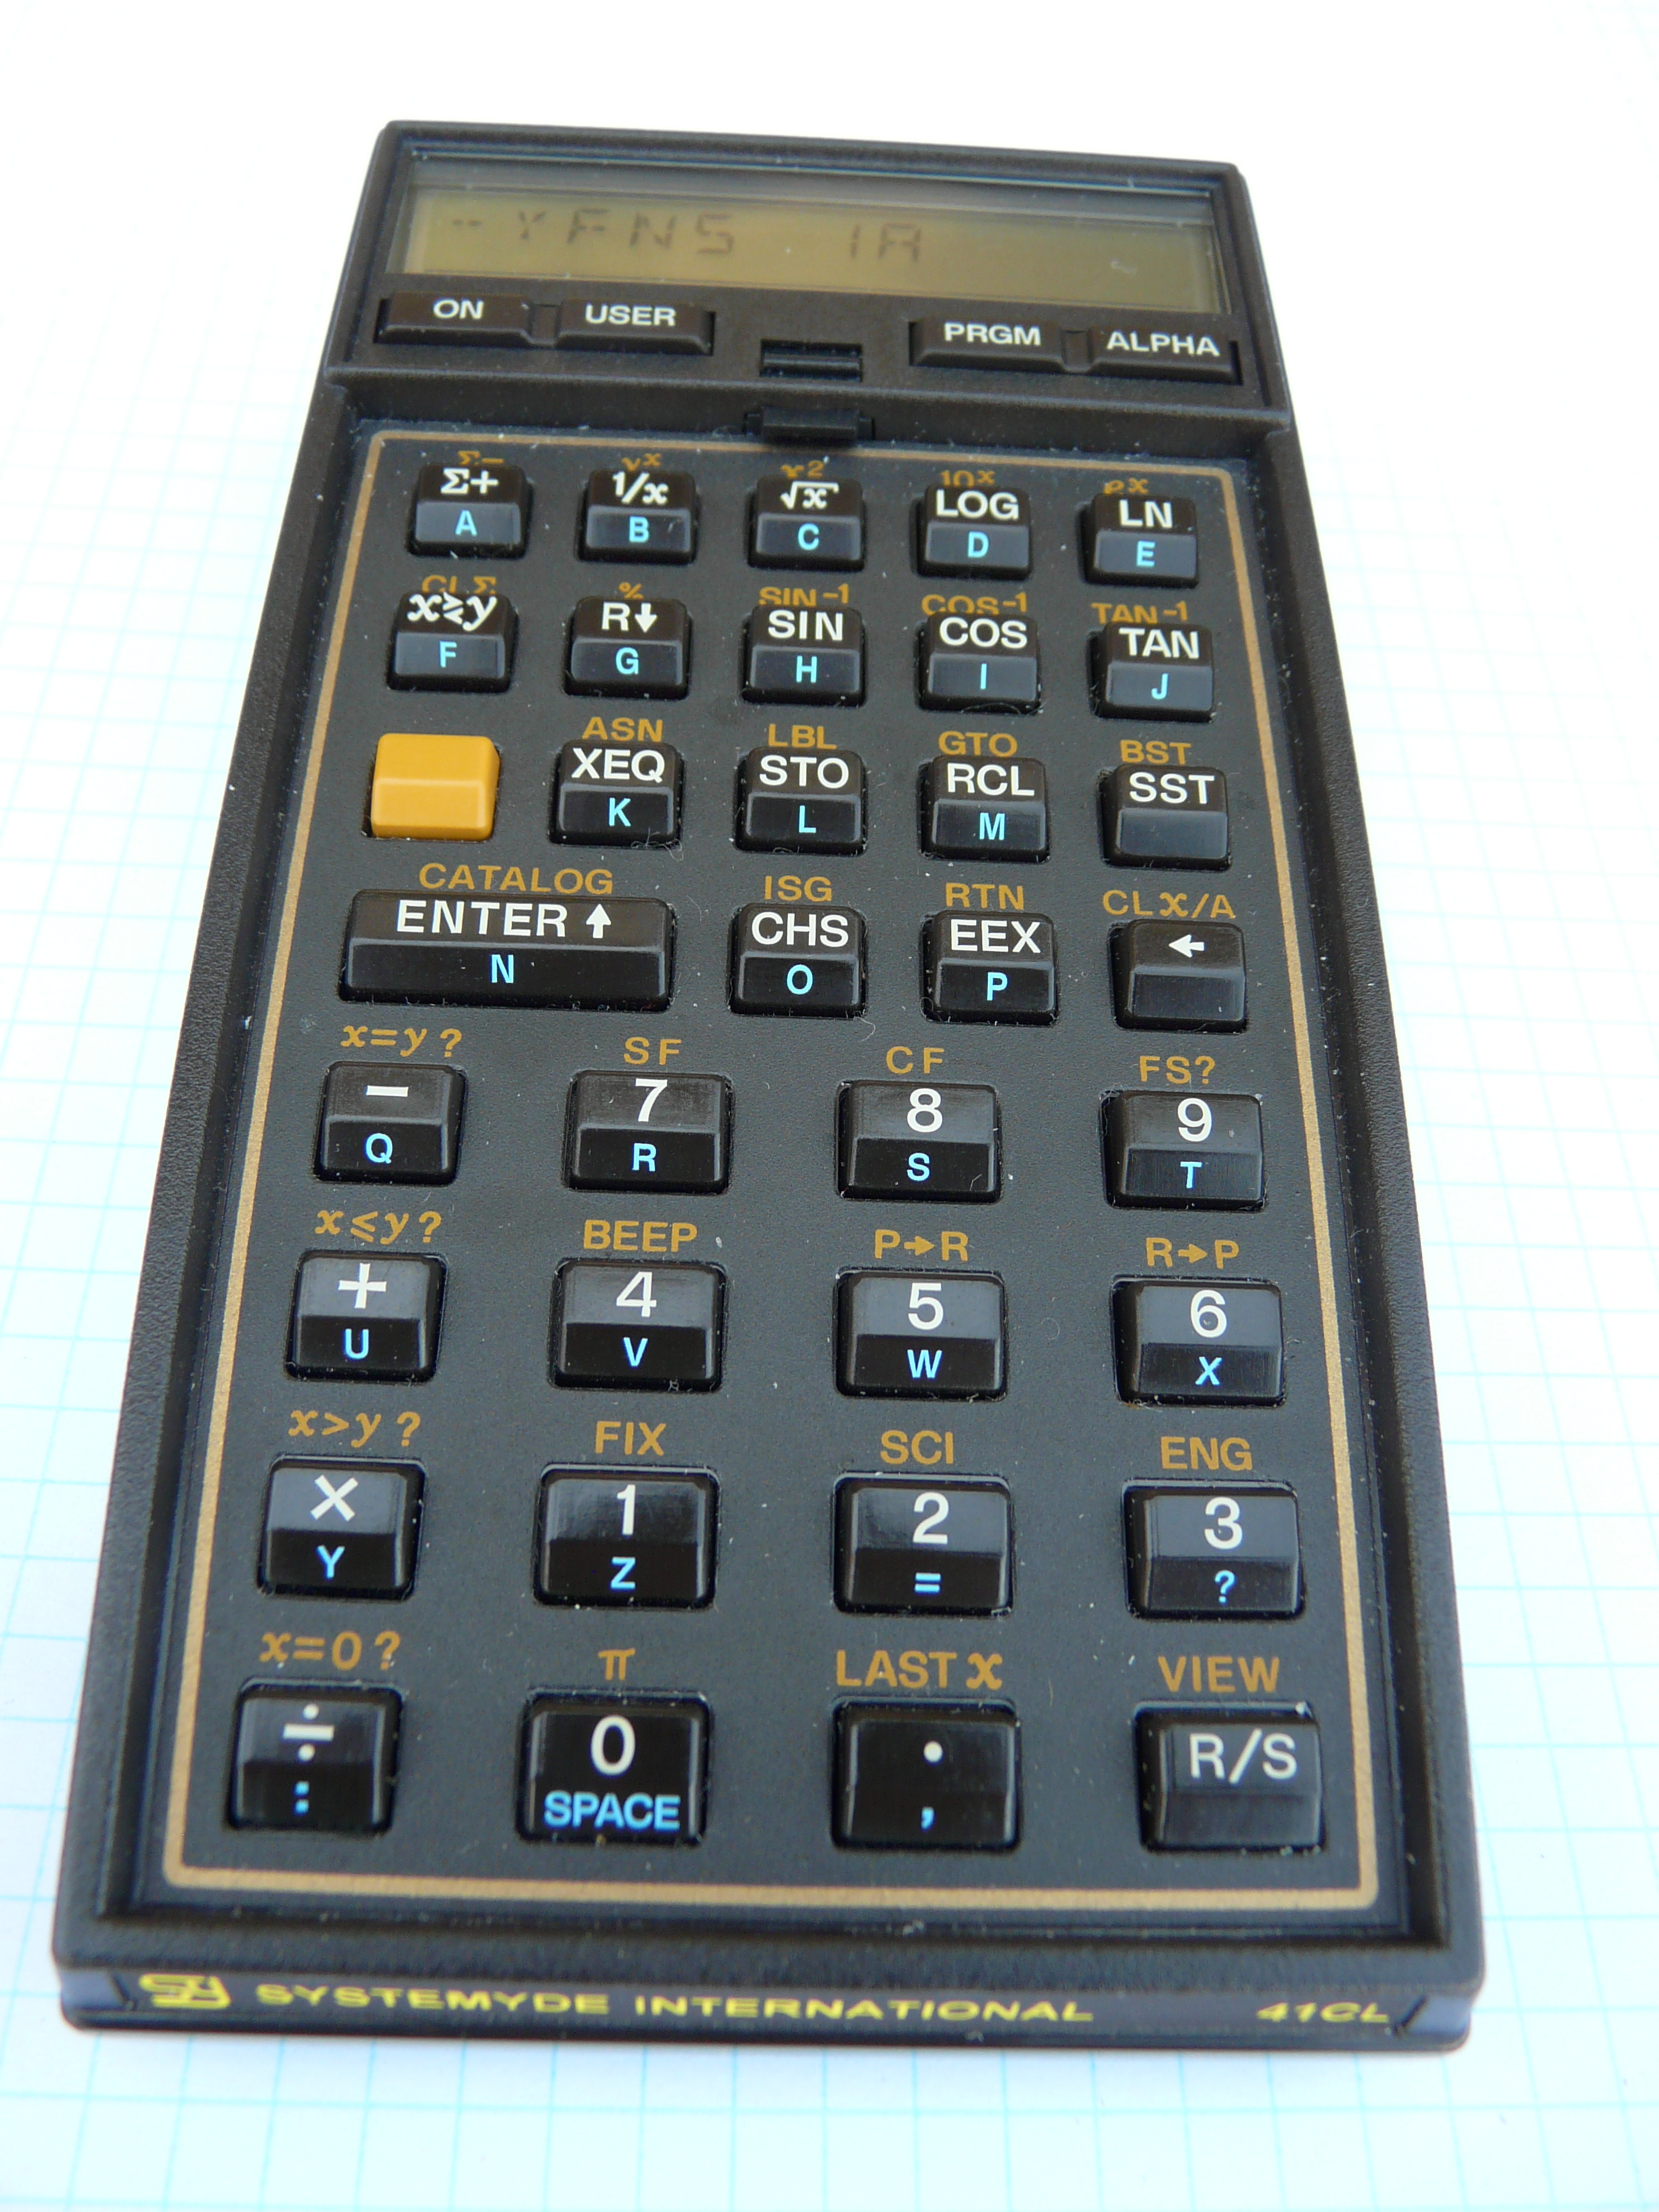 41CL Calculator: Home